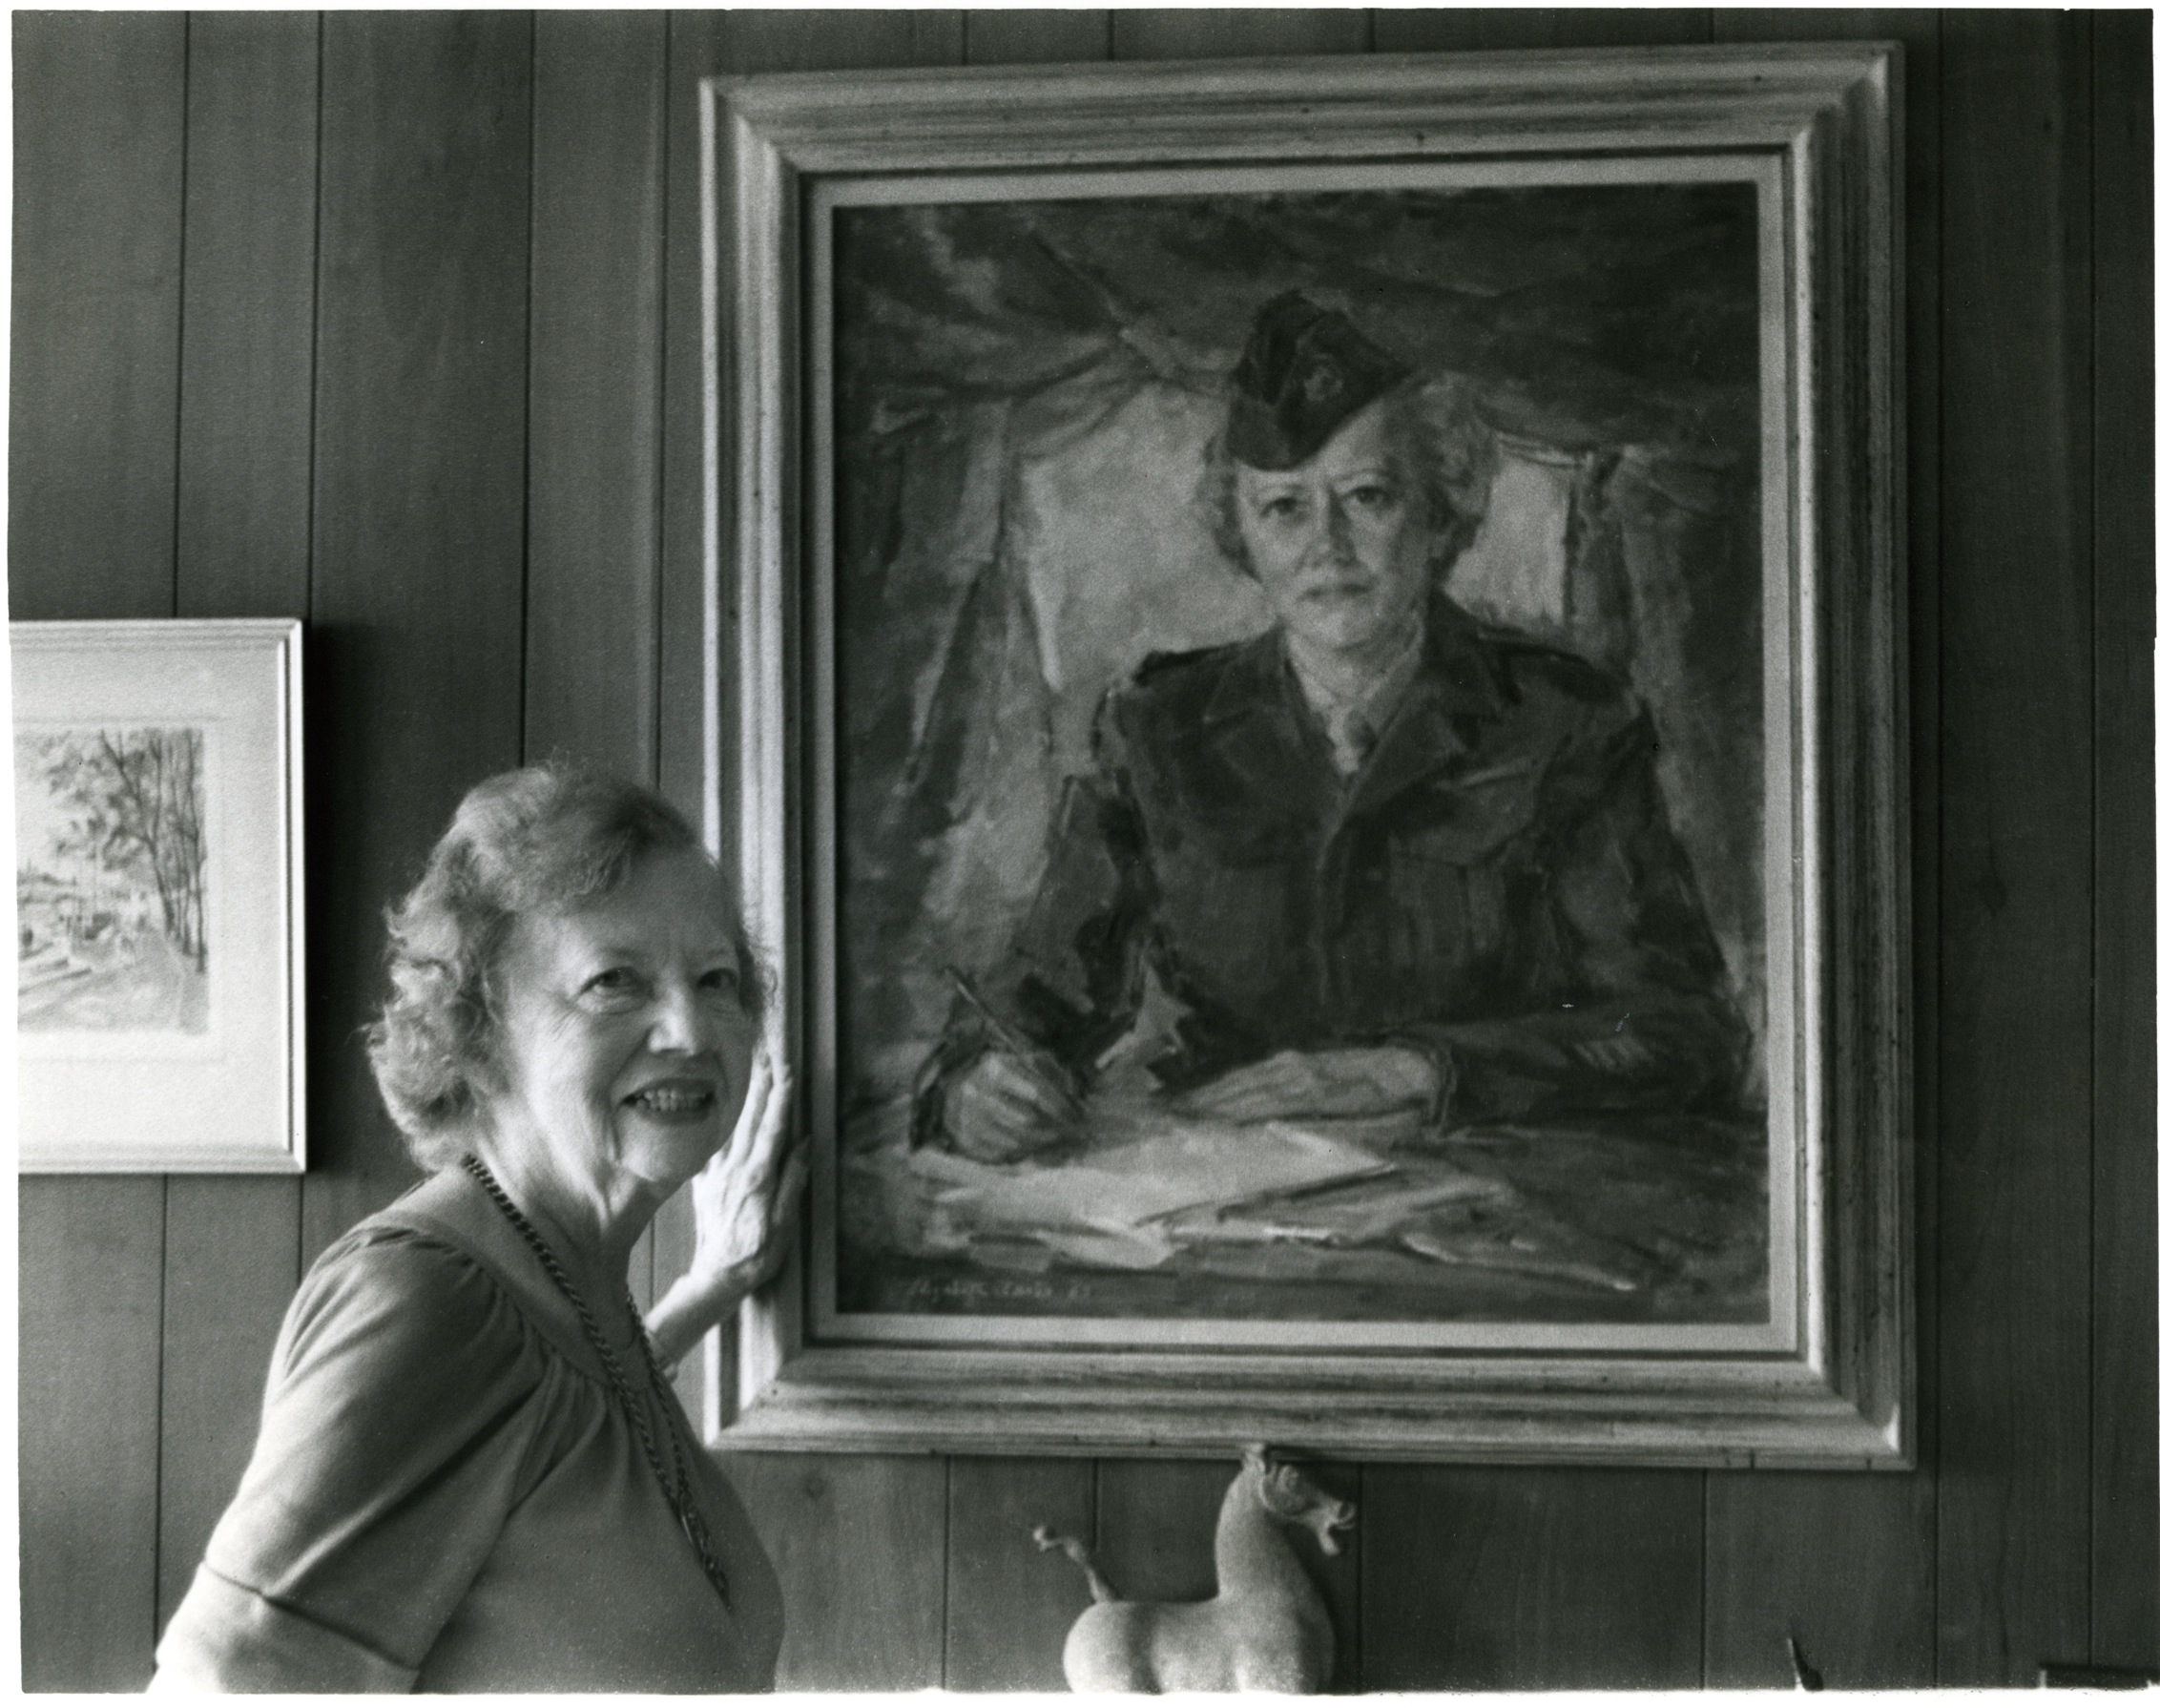 ruth-cowan-and-her-wwii-portrait